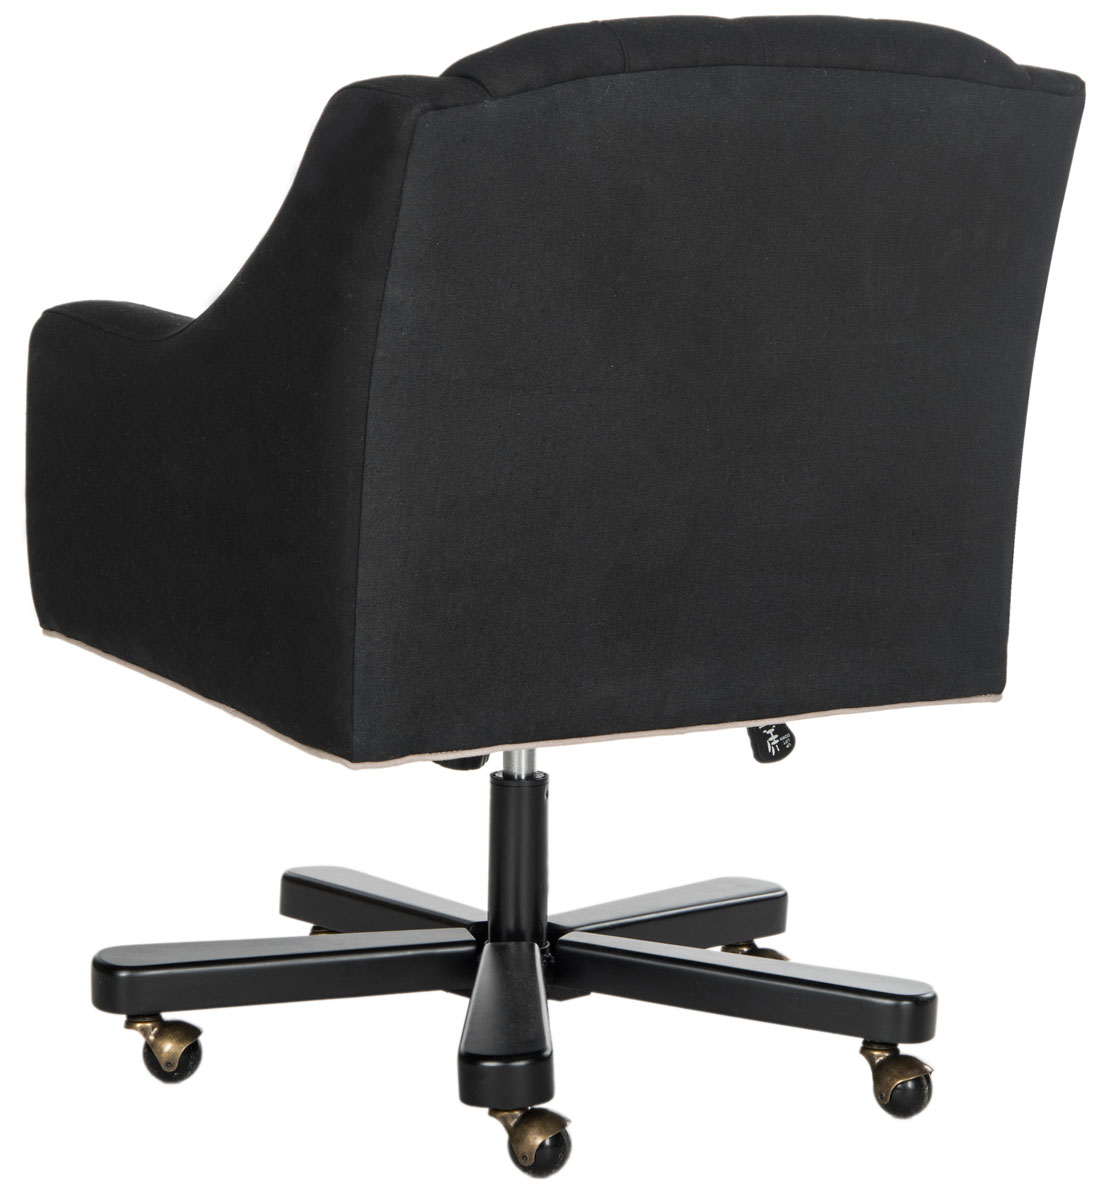 co design office chairs chair side tables with storage mcr4210a desk furniture by safavieh share this product